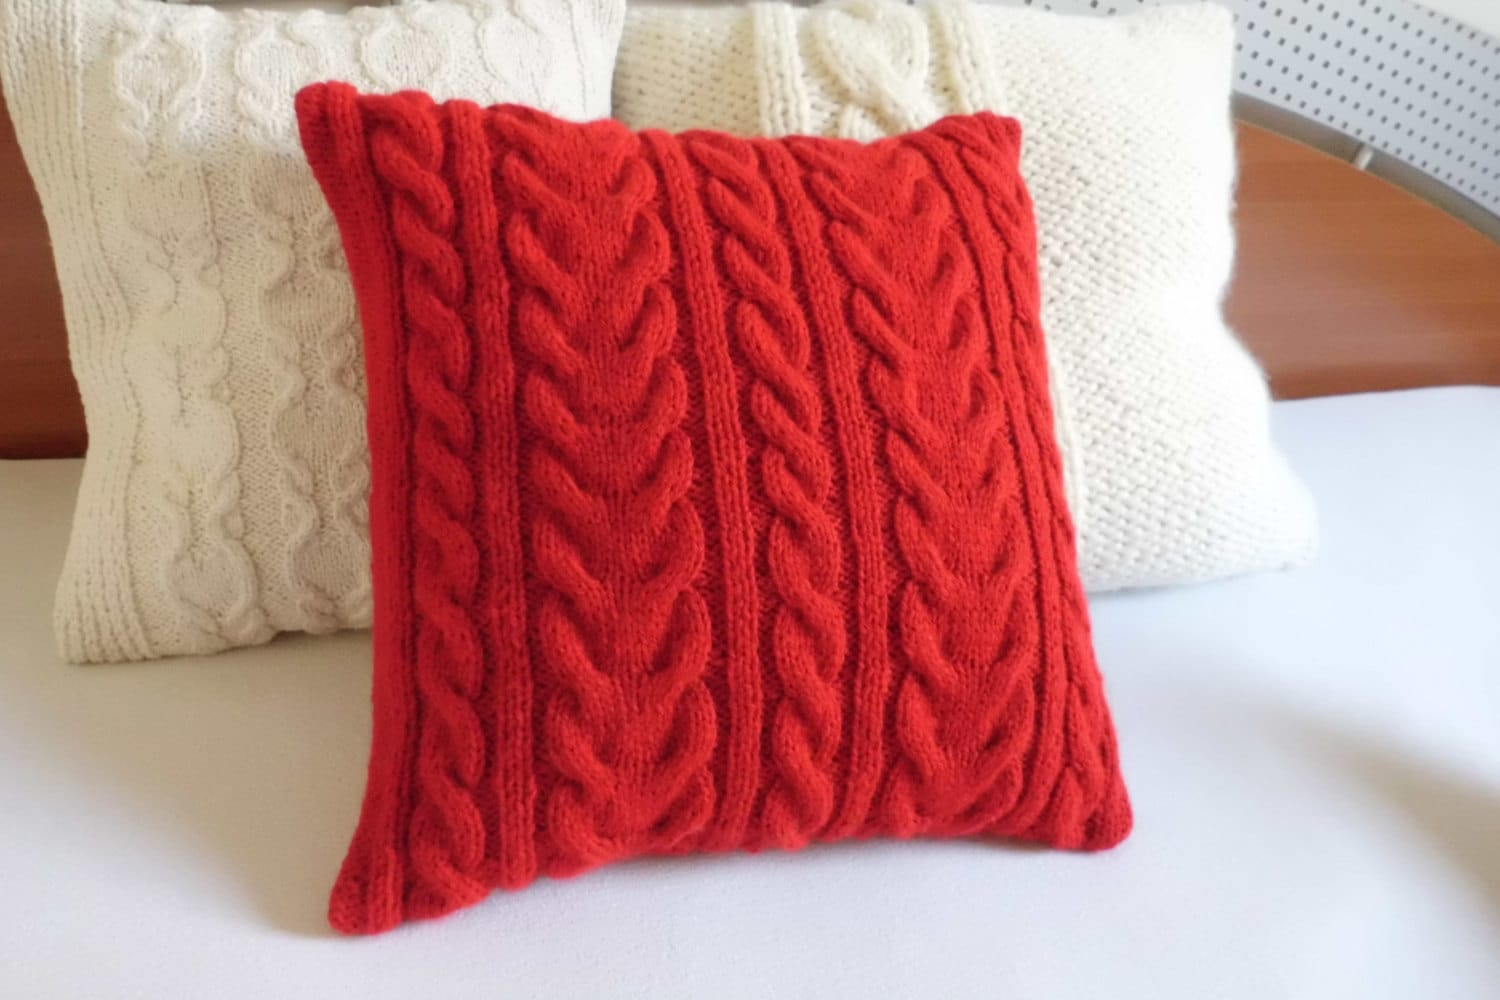 Custom Red Cable Knit Couch Pillow Case Knit Throw Pillow ~ Red Throw Pillows For Sofa